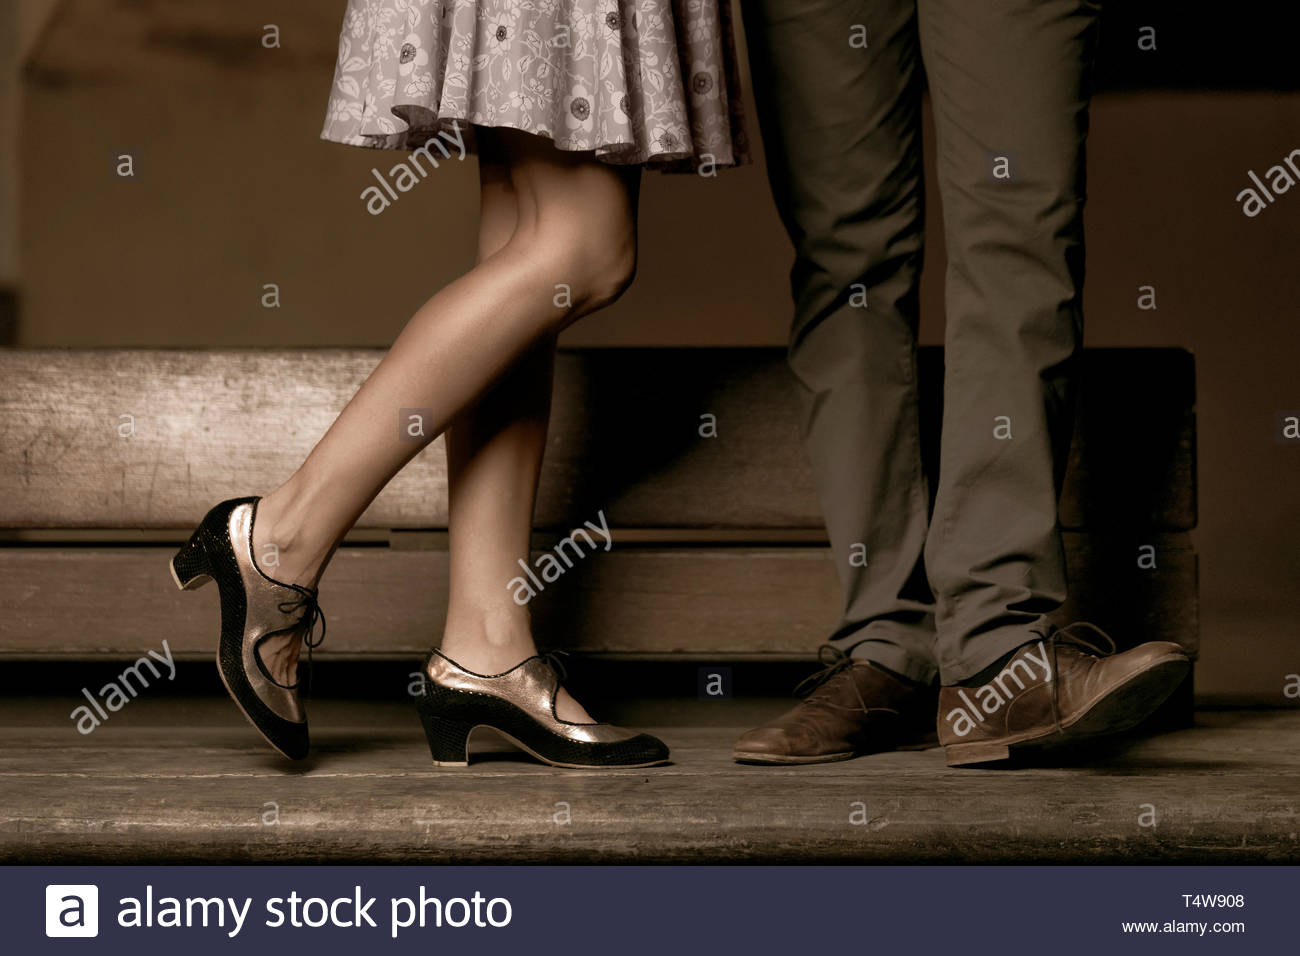 Legs of a couple standing and kissing on a wooden bench. - Stock Image